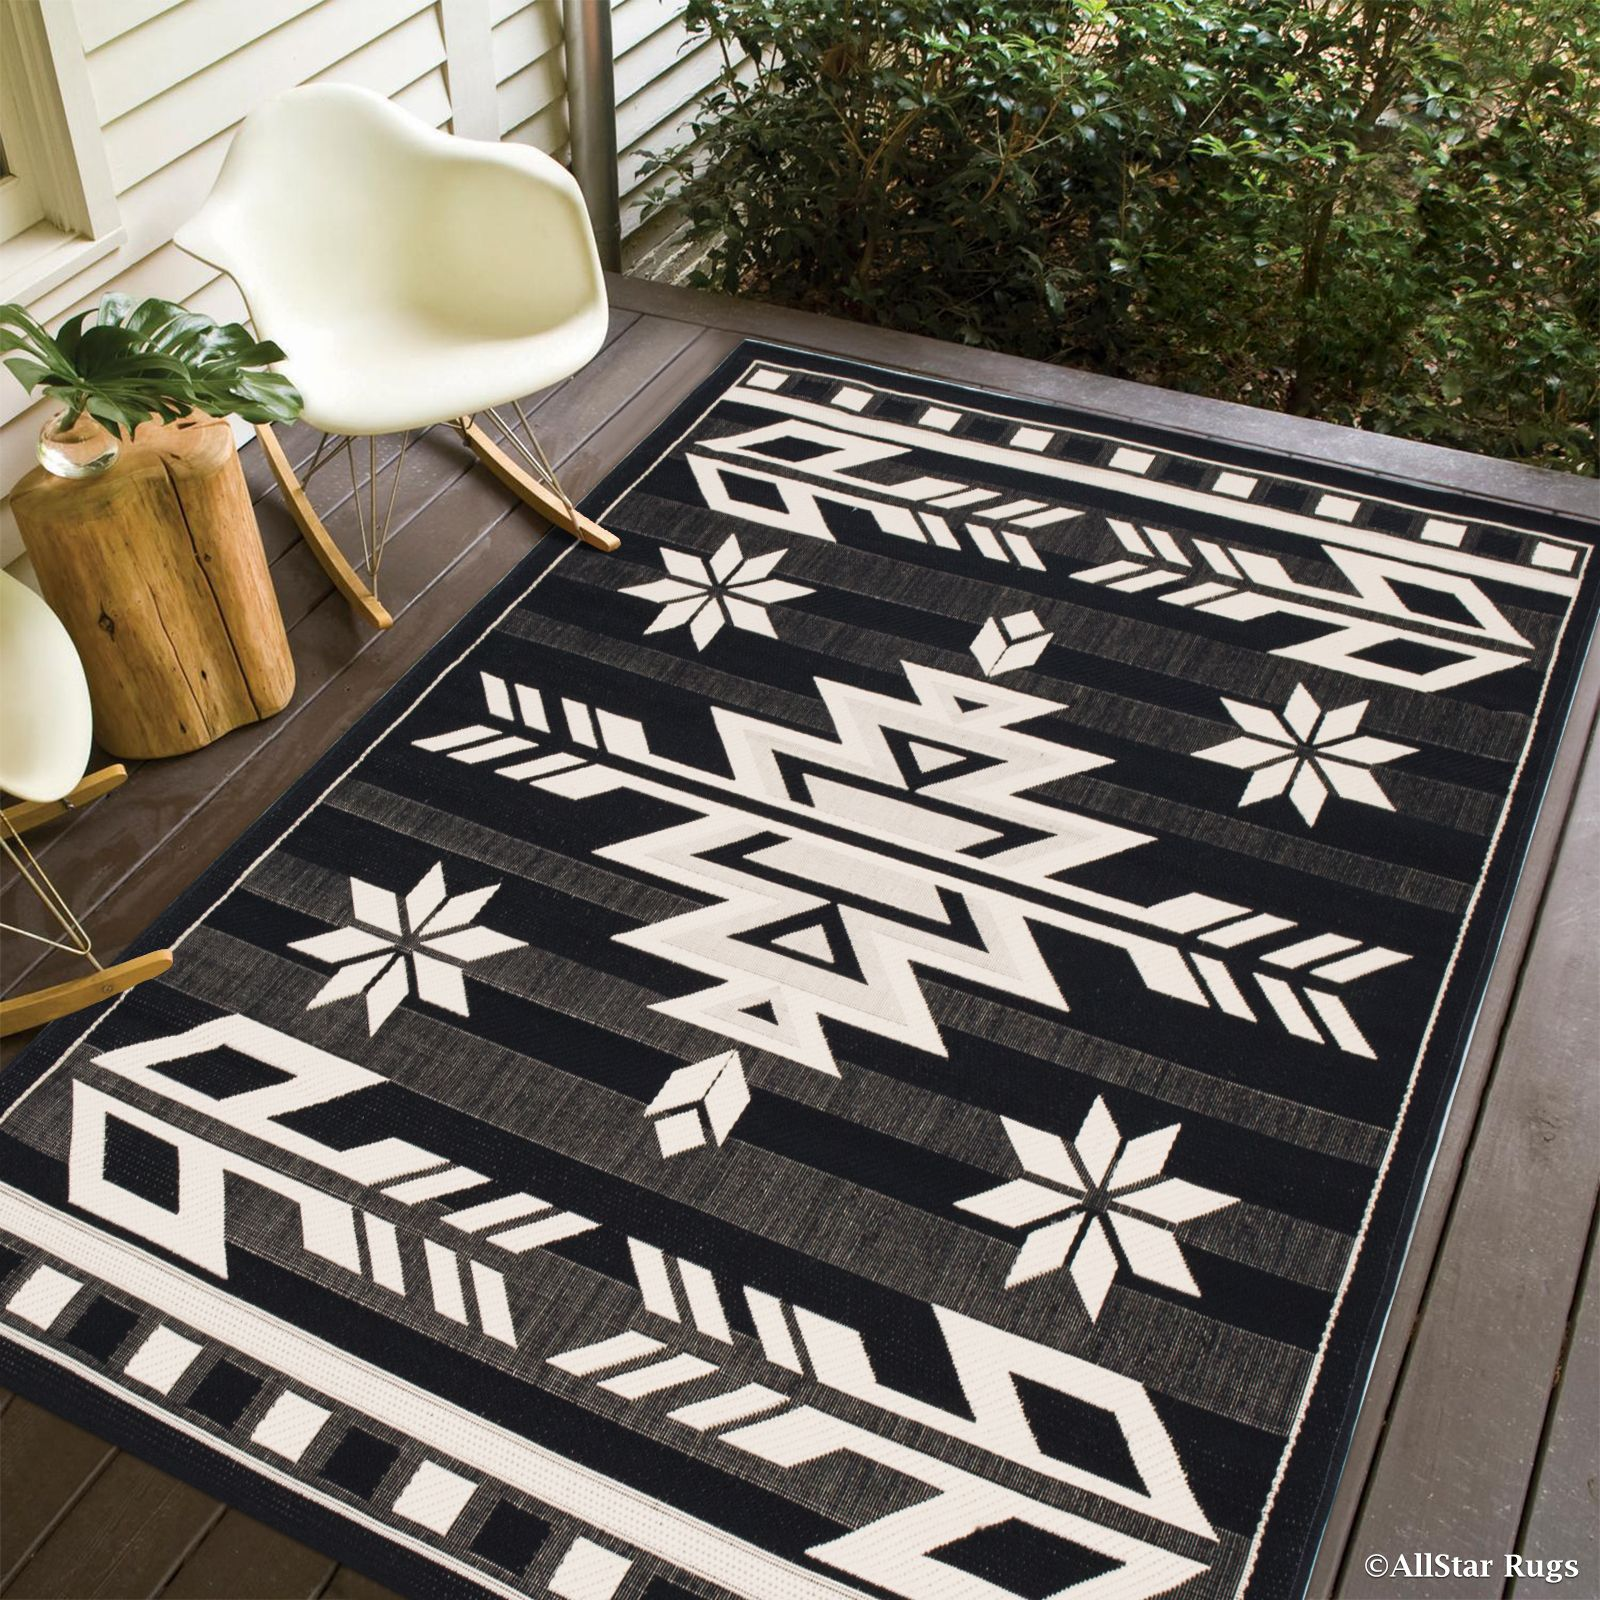 Black Allstar Indoor Outdoor All Weather Rug With Arrow Pattern 7 10 X 10 2 Walmart Com In 2020 Rugs Black Area Rugs Area Rugs